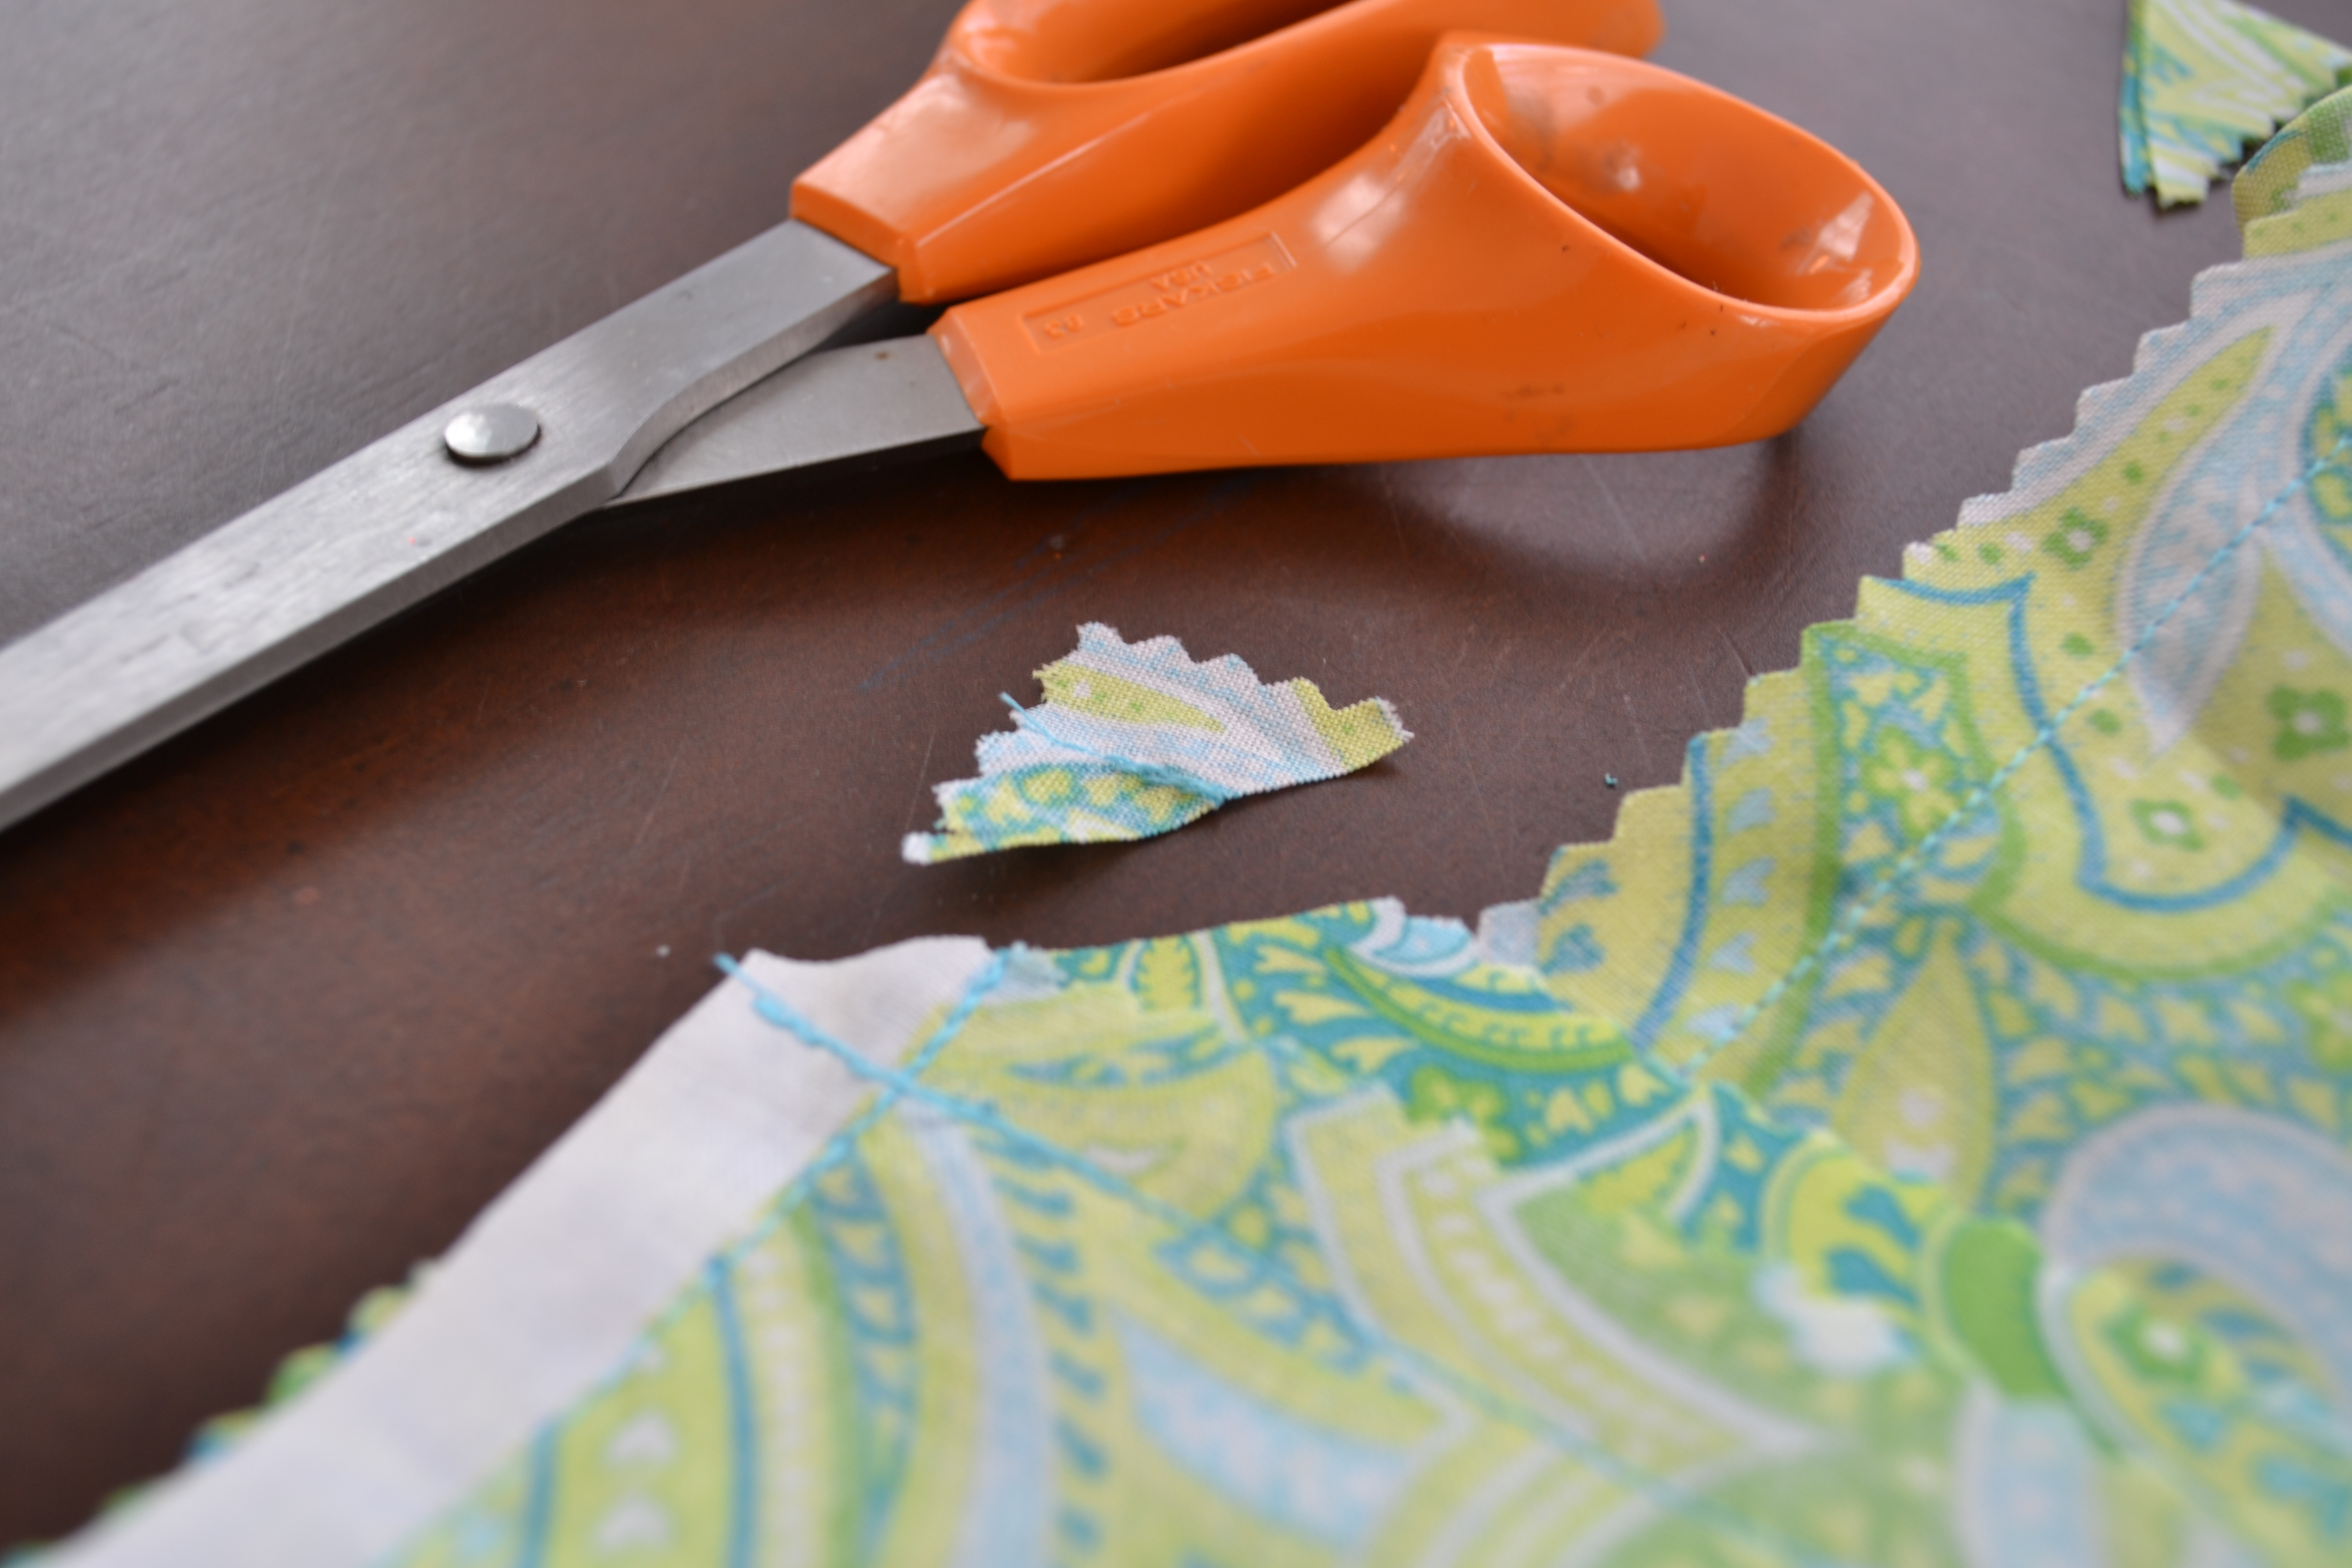 Snip The Corners Of The Fabric With Scissors, So Your Table Runner Will  Stay Flat